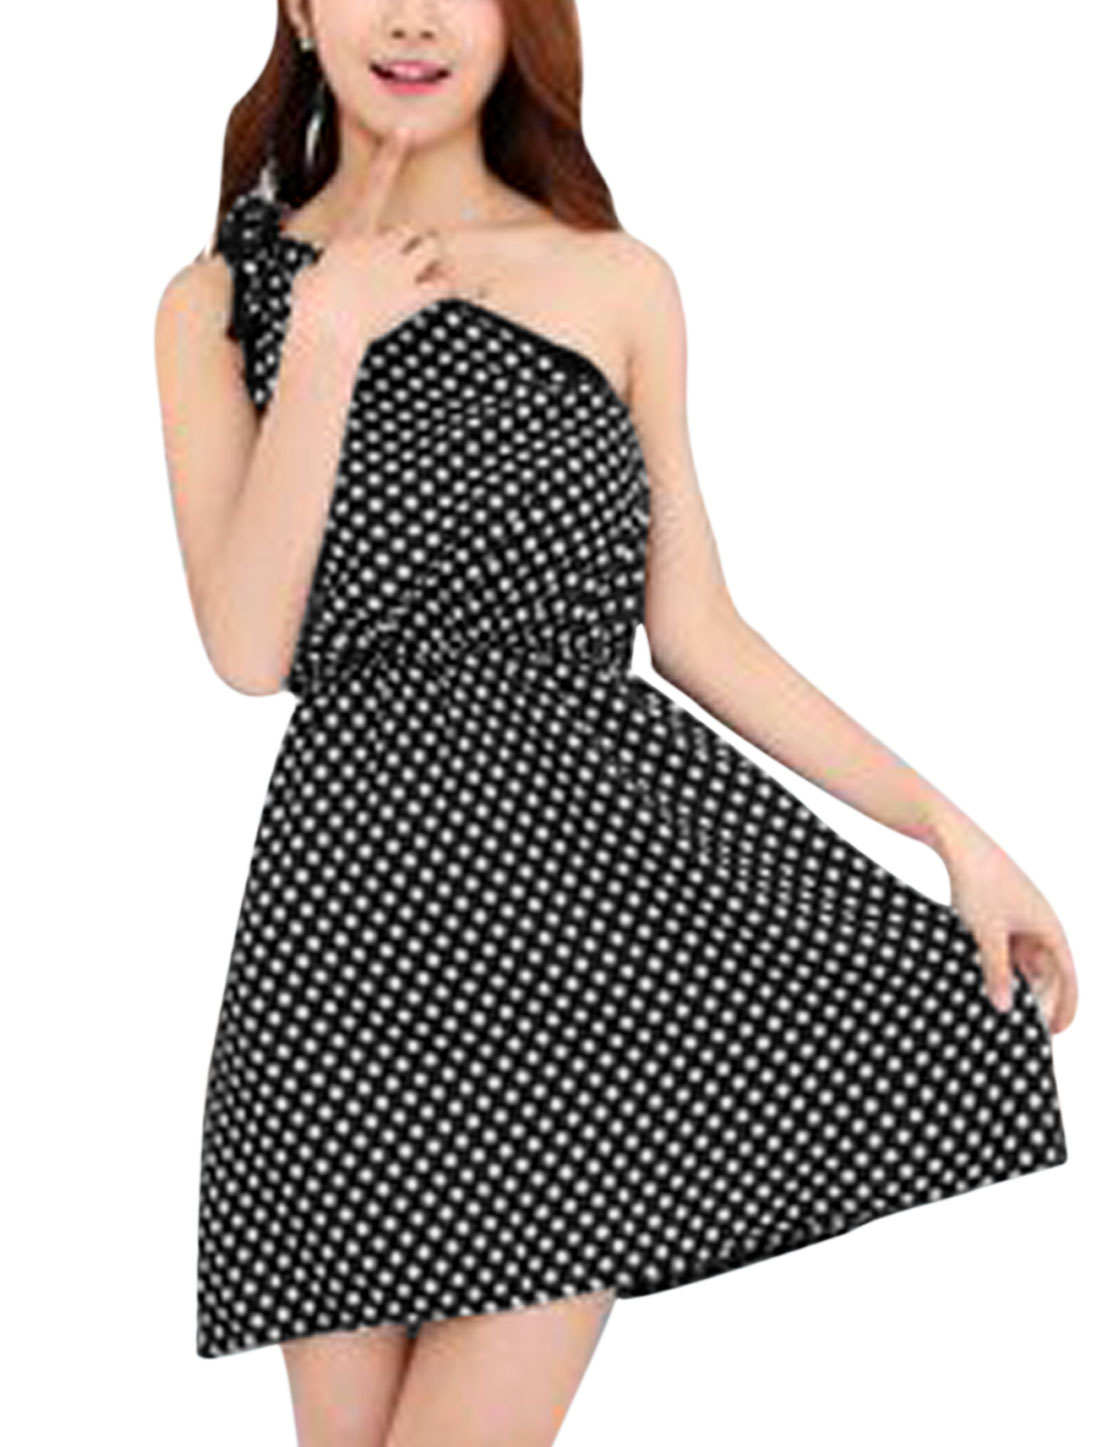 Ladies Elastic Waist Dots Print One Shoulder Summer Dress Black White XS